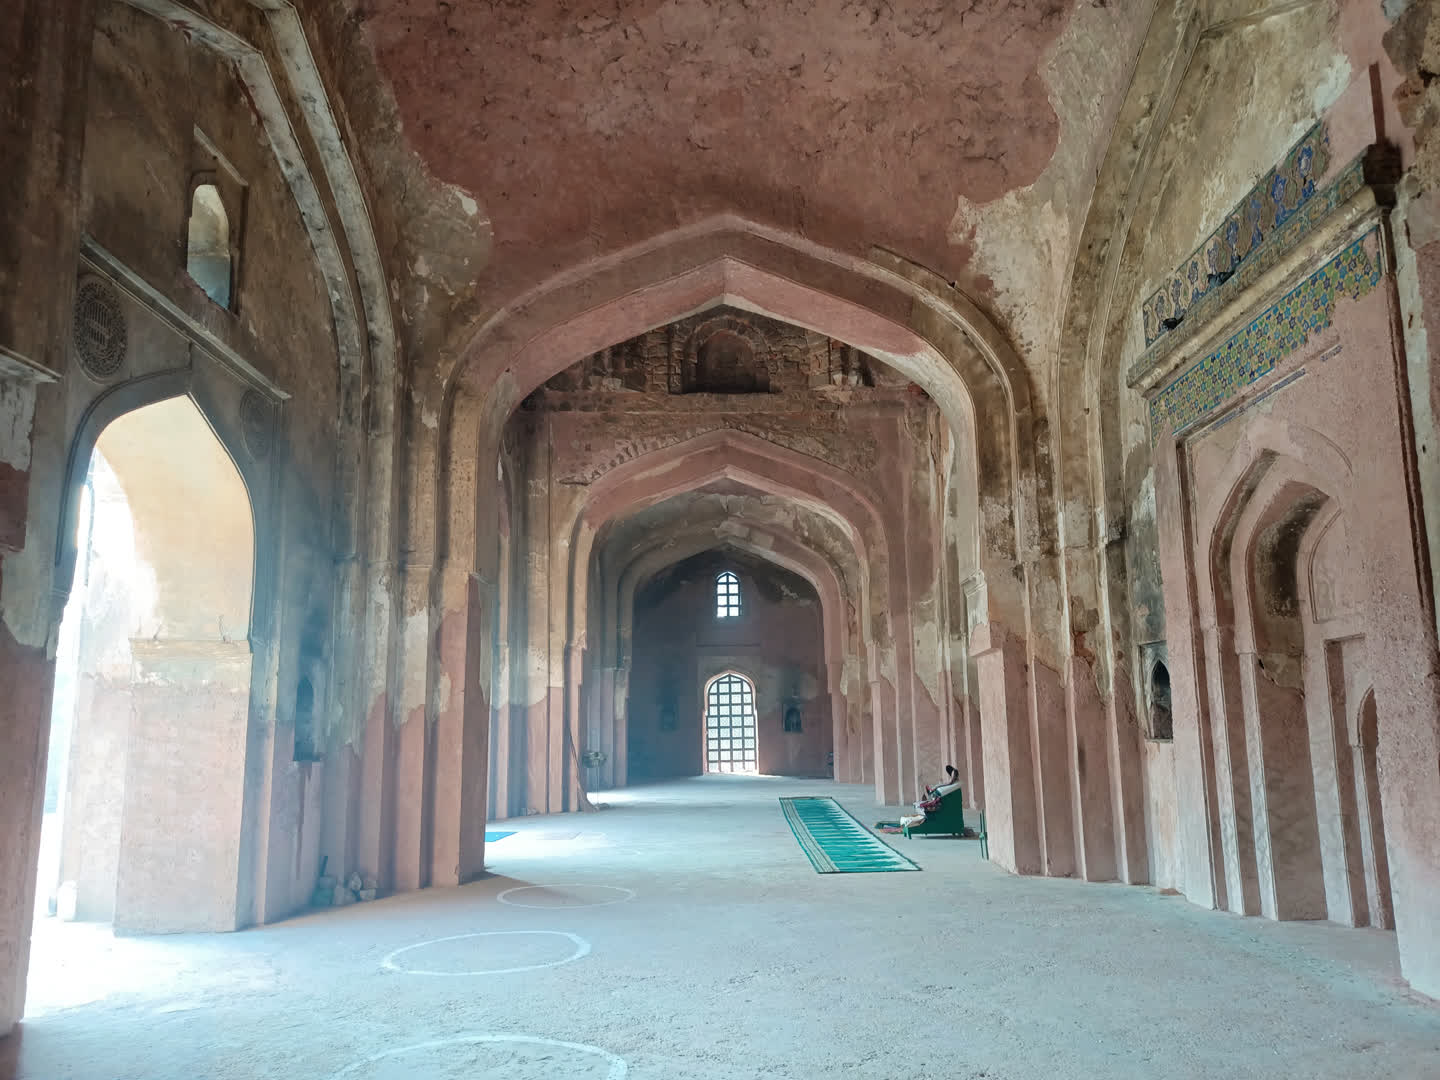 Interiors of the mosque